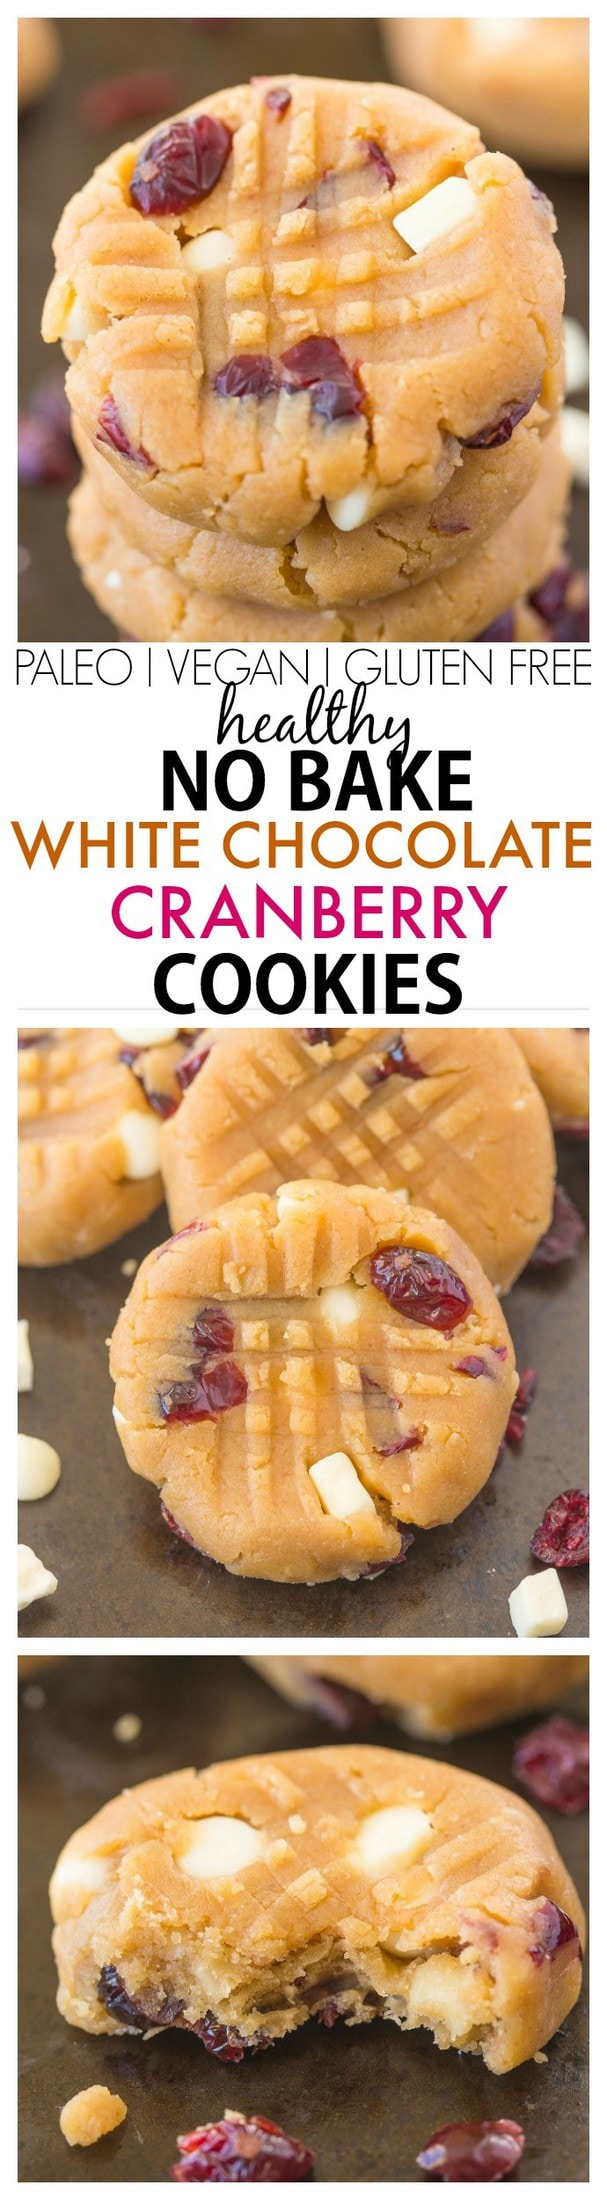 Healthy No Bake White Chocolate Cranberry Cookies Butter Oil Sugar Or